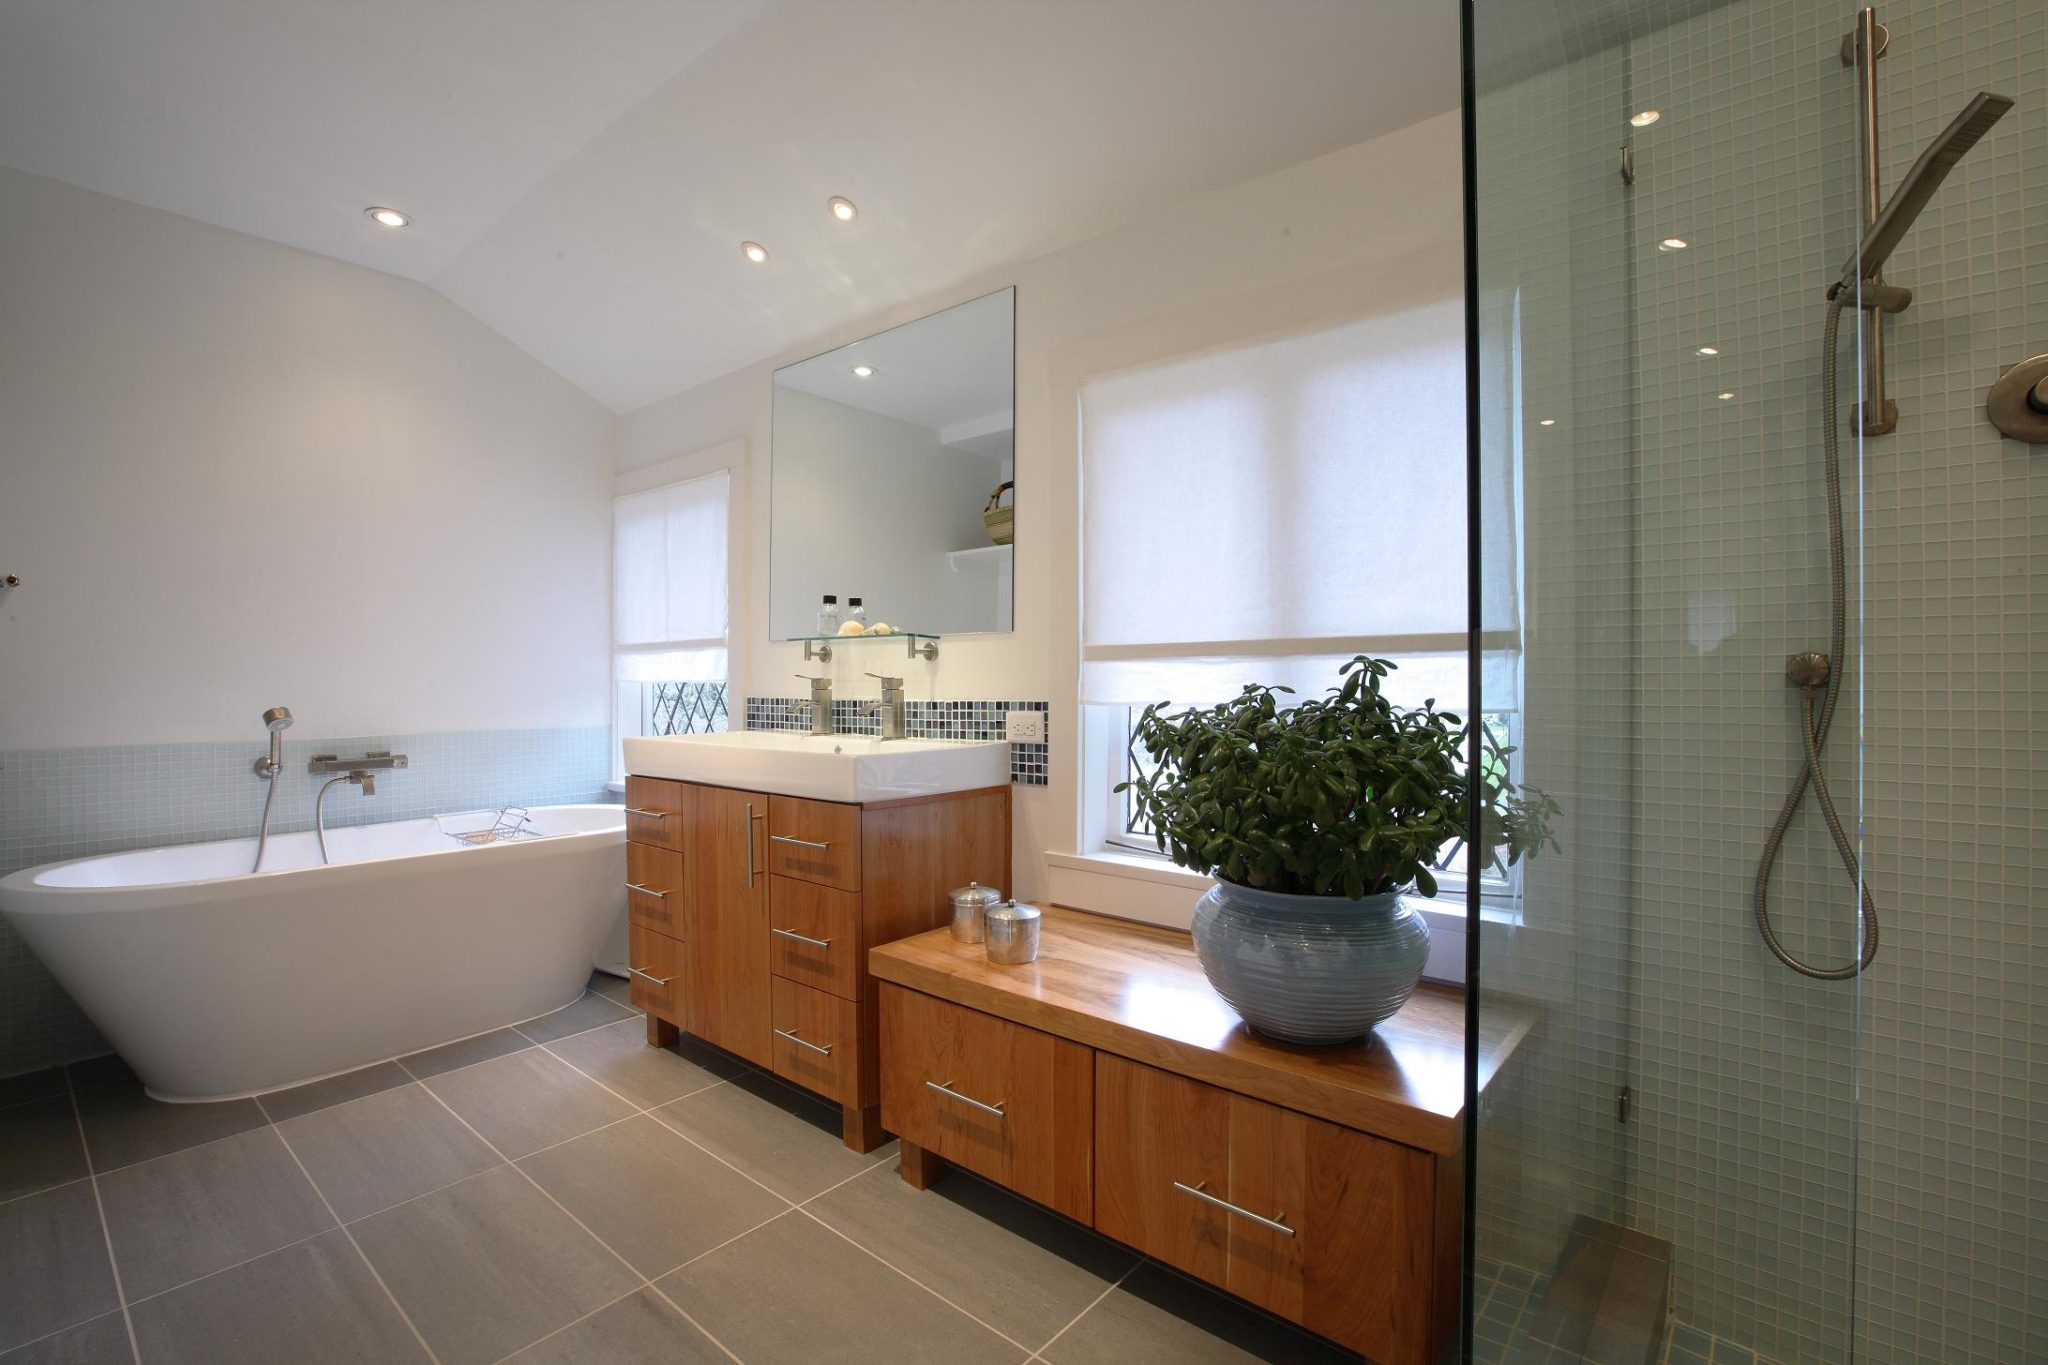 Bathroom renovation beyond the aesthetics klondike for Bathroom renos images